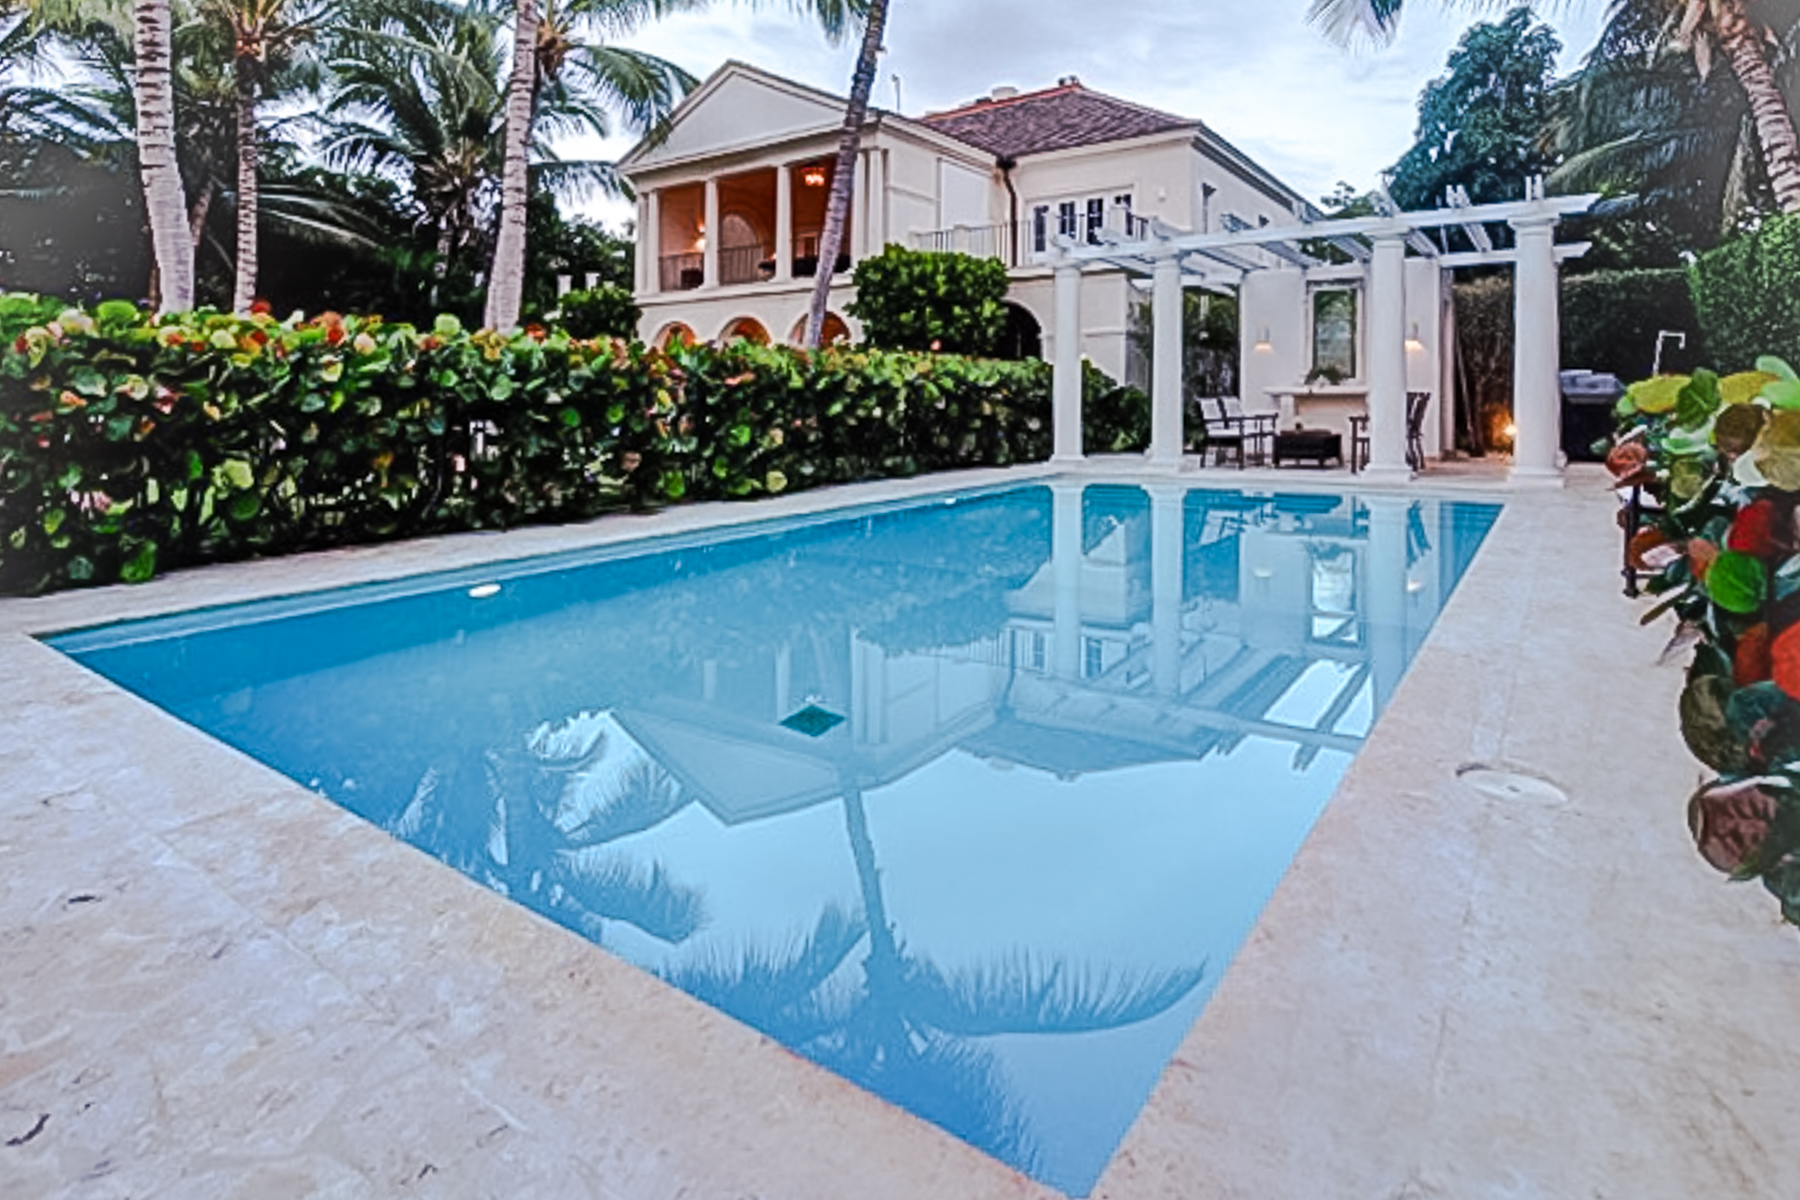 Classic Tortuga Bay Villa with 5 Bedroom and completely Furnished